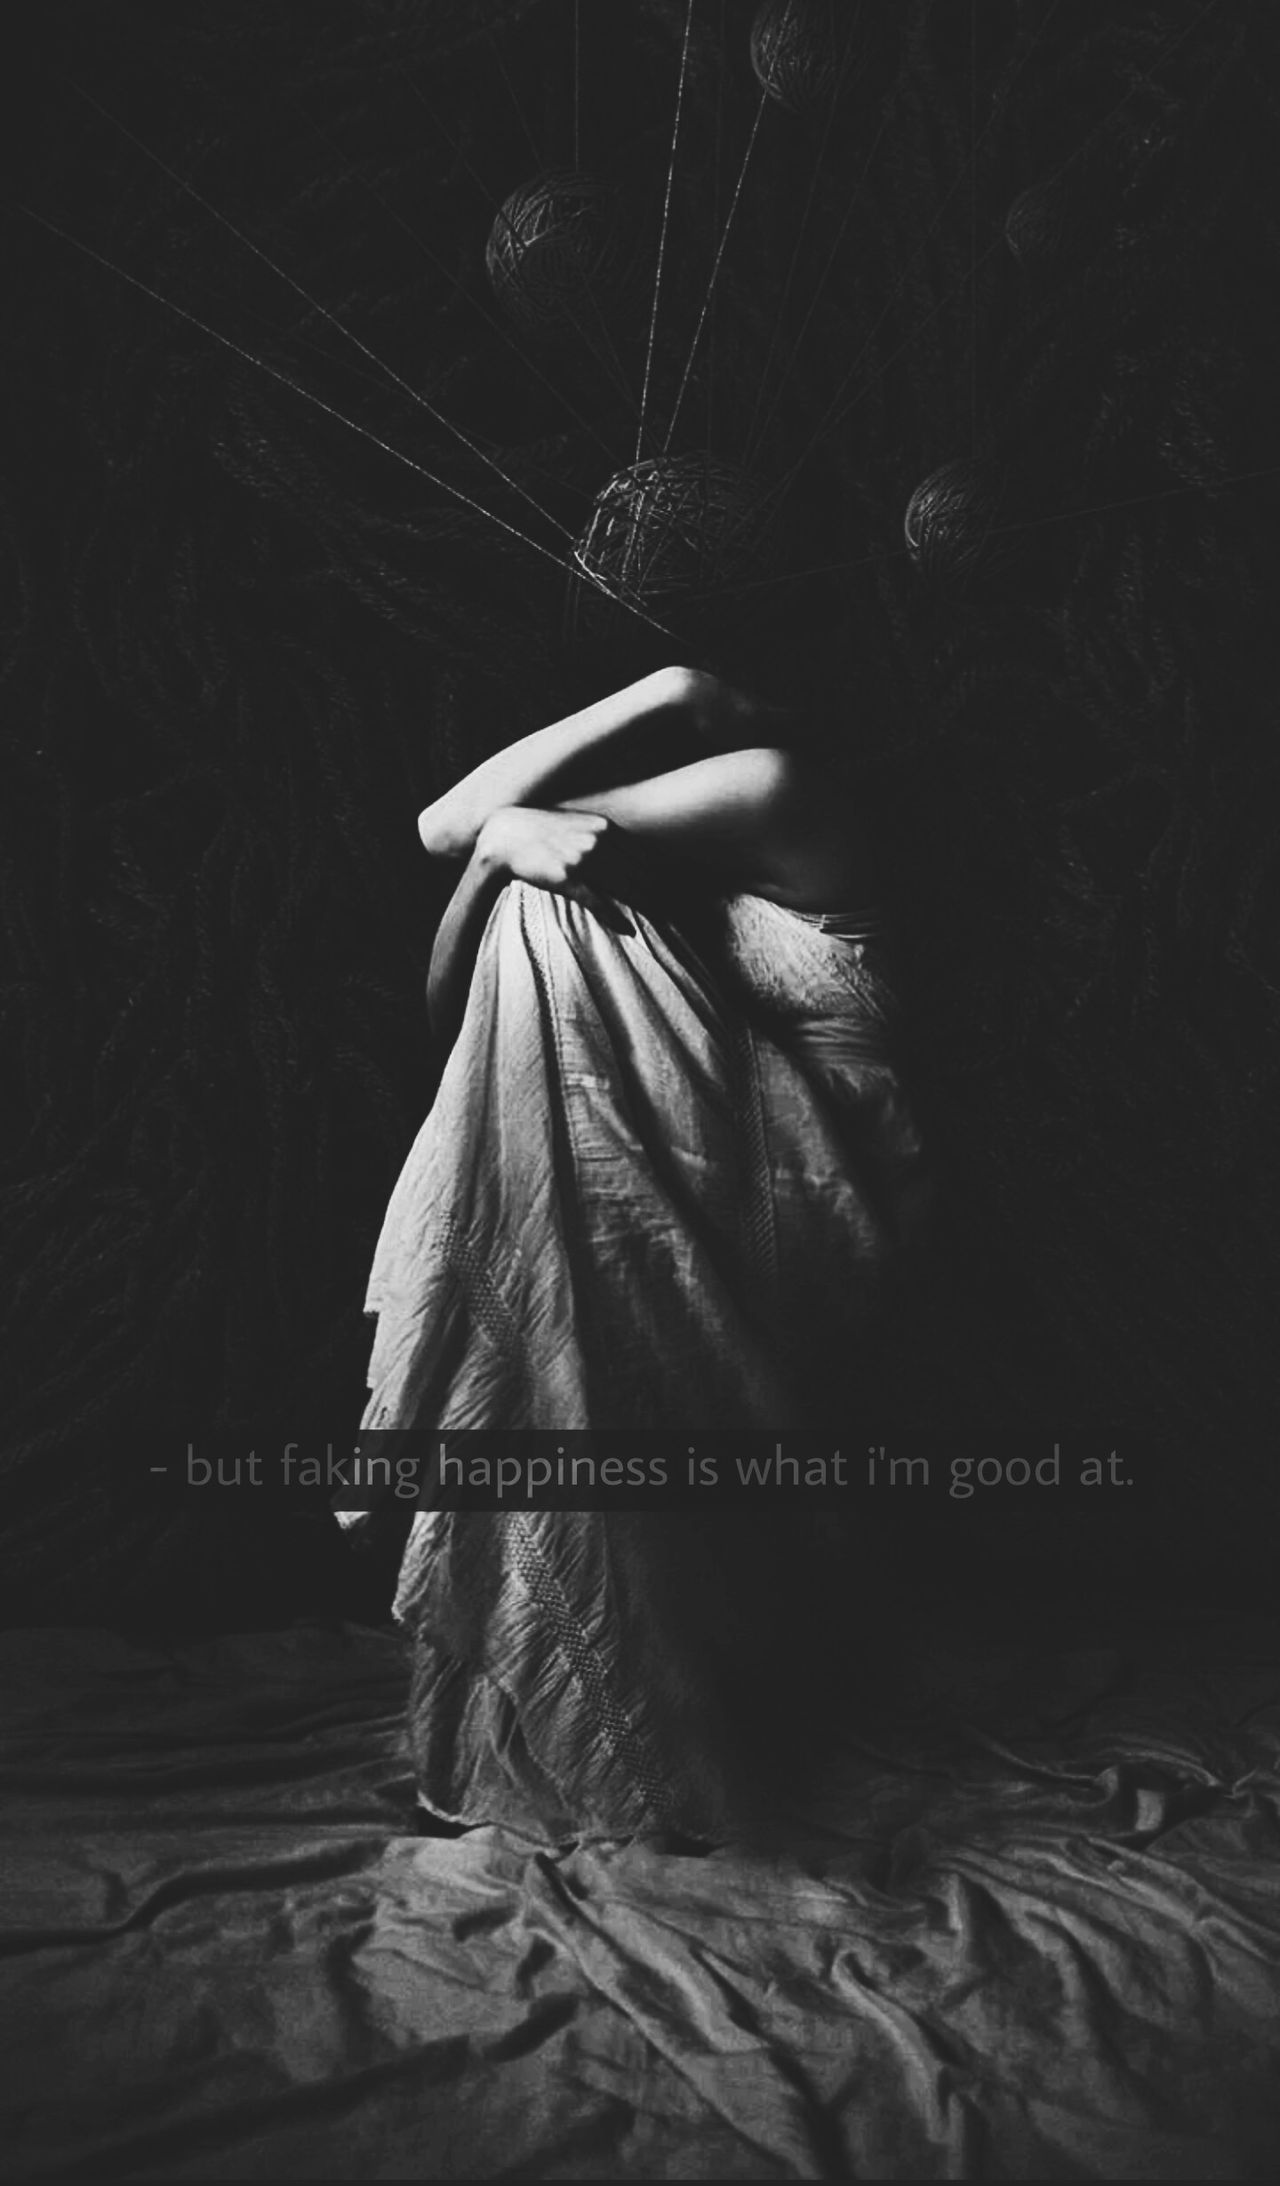 ig GORGEOUS.CHUCK Darkpath B&w Darkthoughts Brokensoul Blackandwhite Lonelymountain Lost Loneliness Feelinglost Memories Lostplaces Black Sadpoetry Darkness And Light